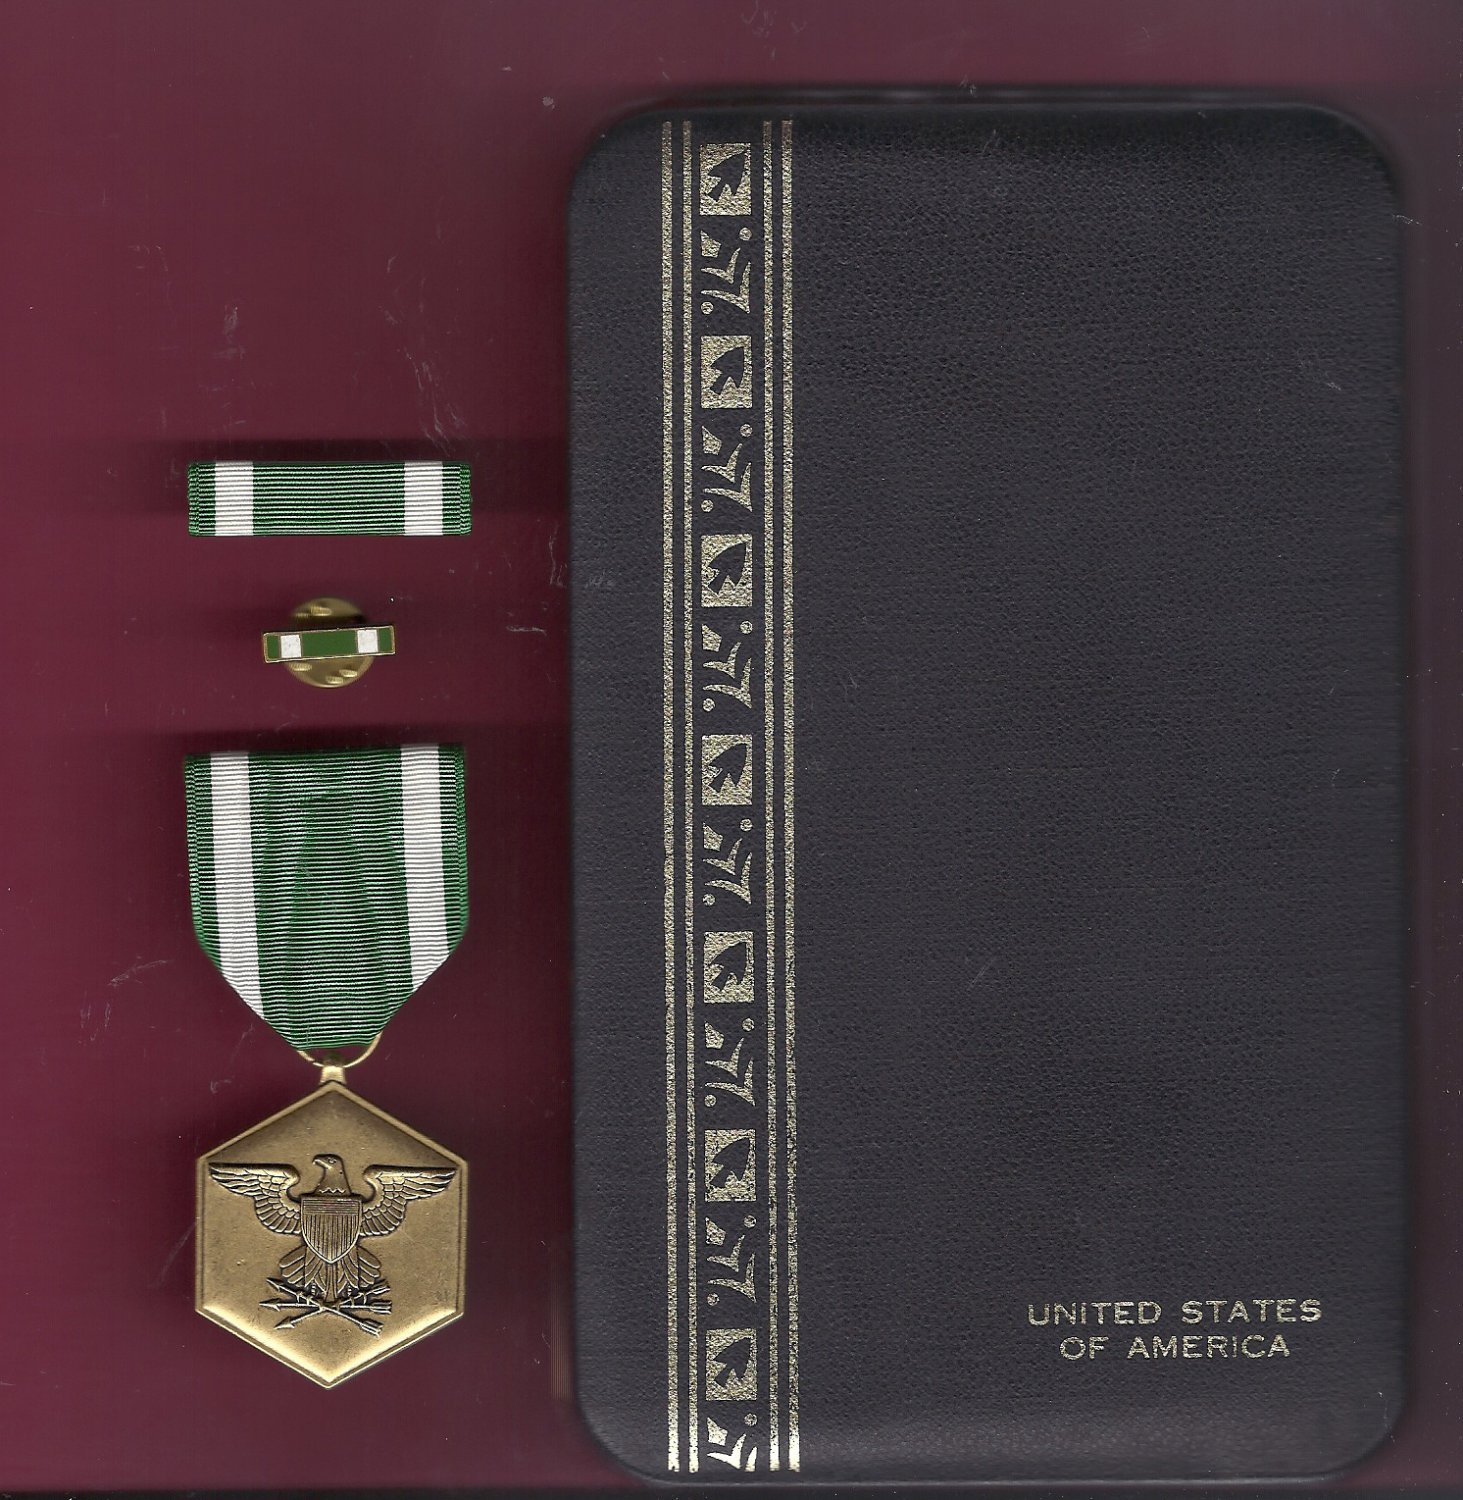 US Navy Commendation medal with ribbon bar and lapel pin in case